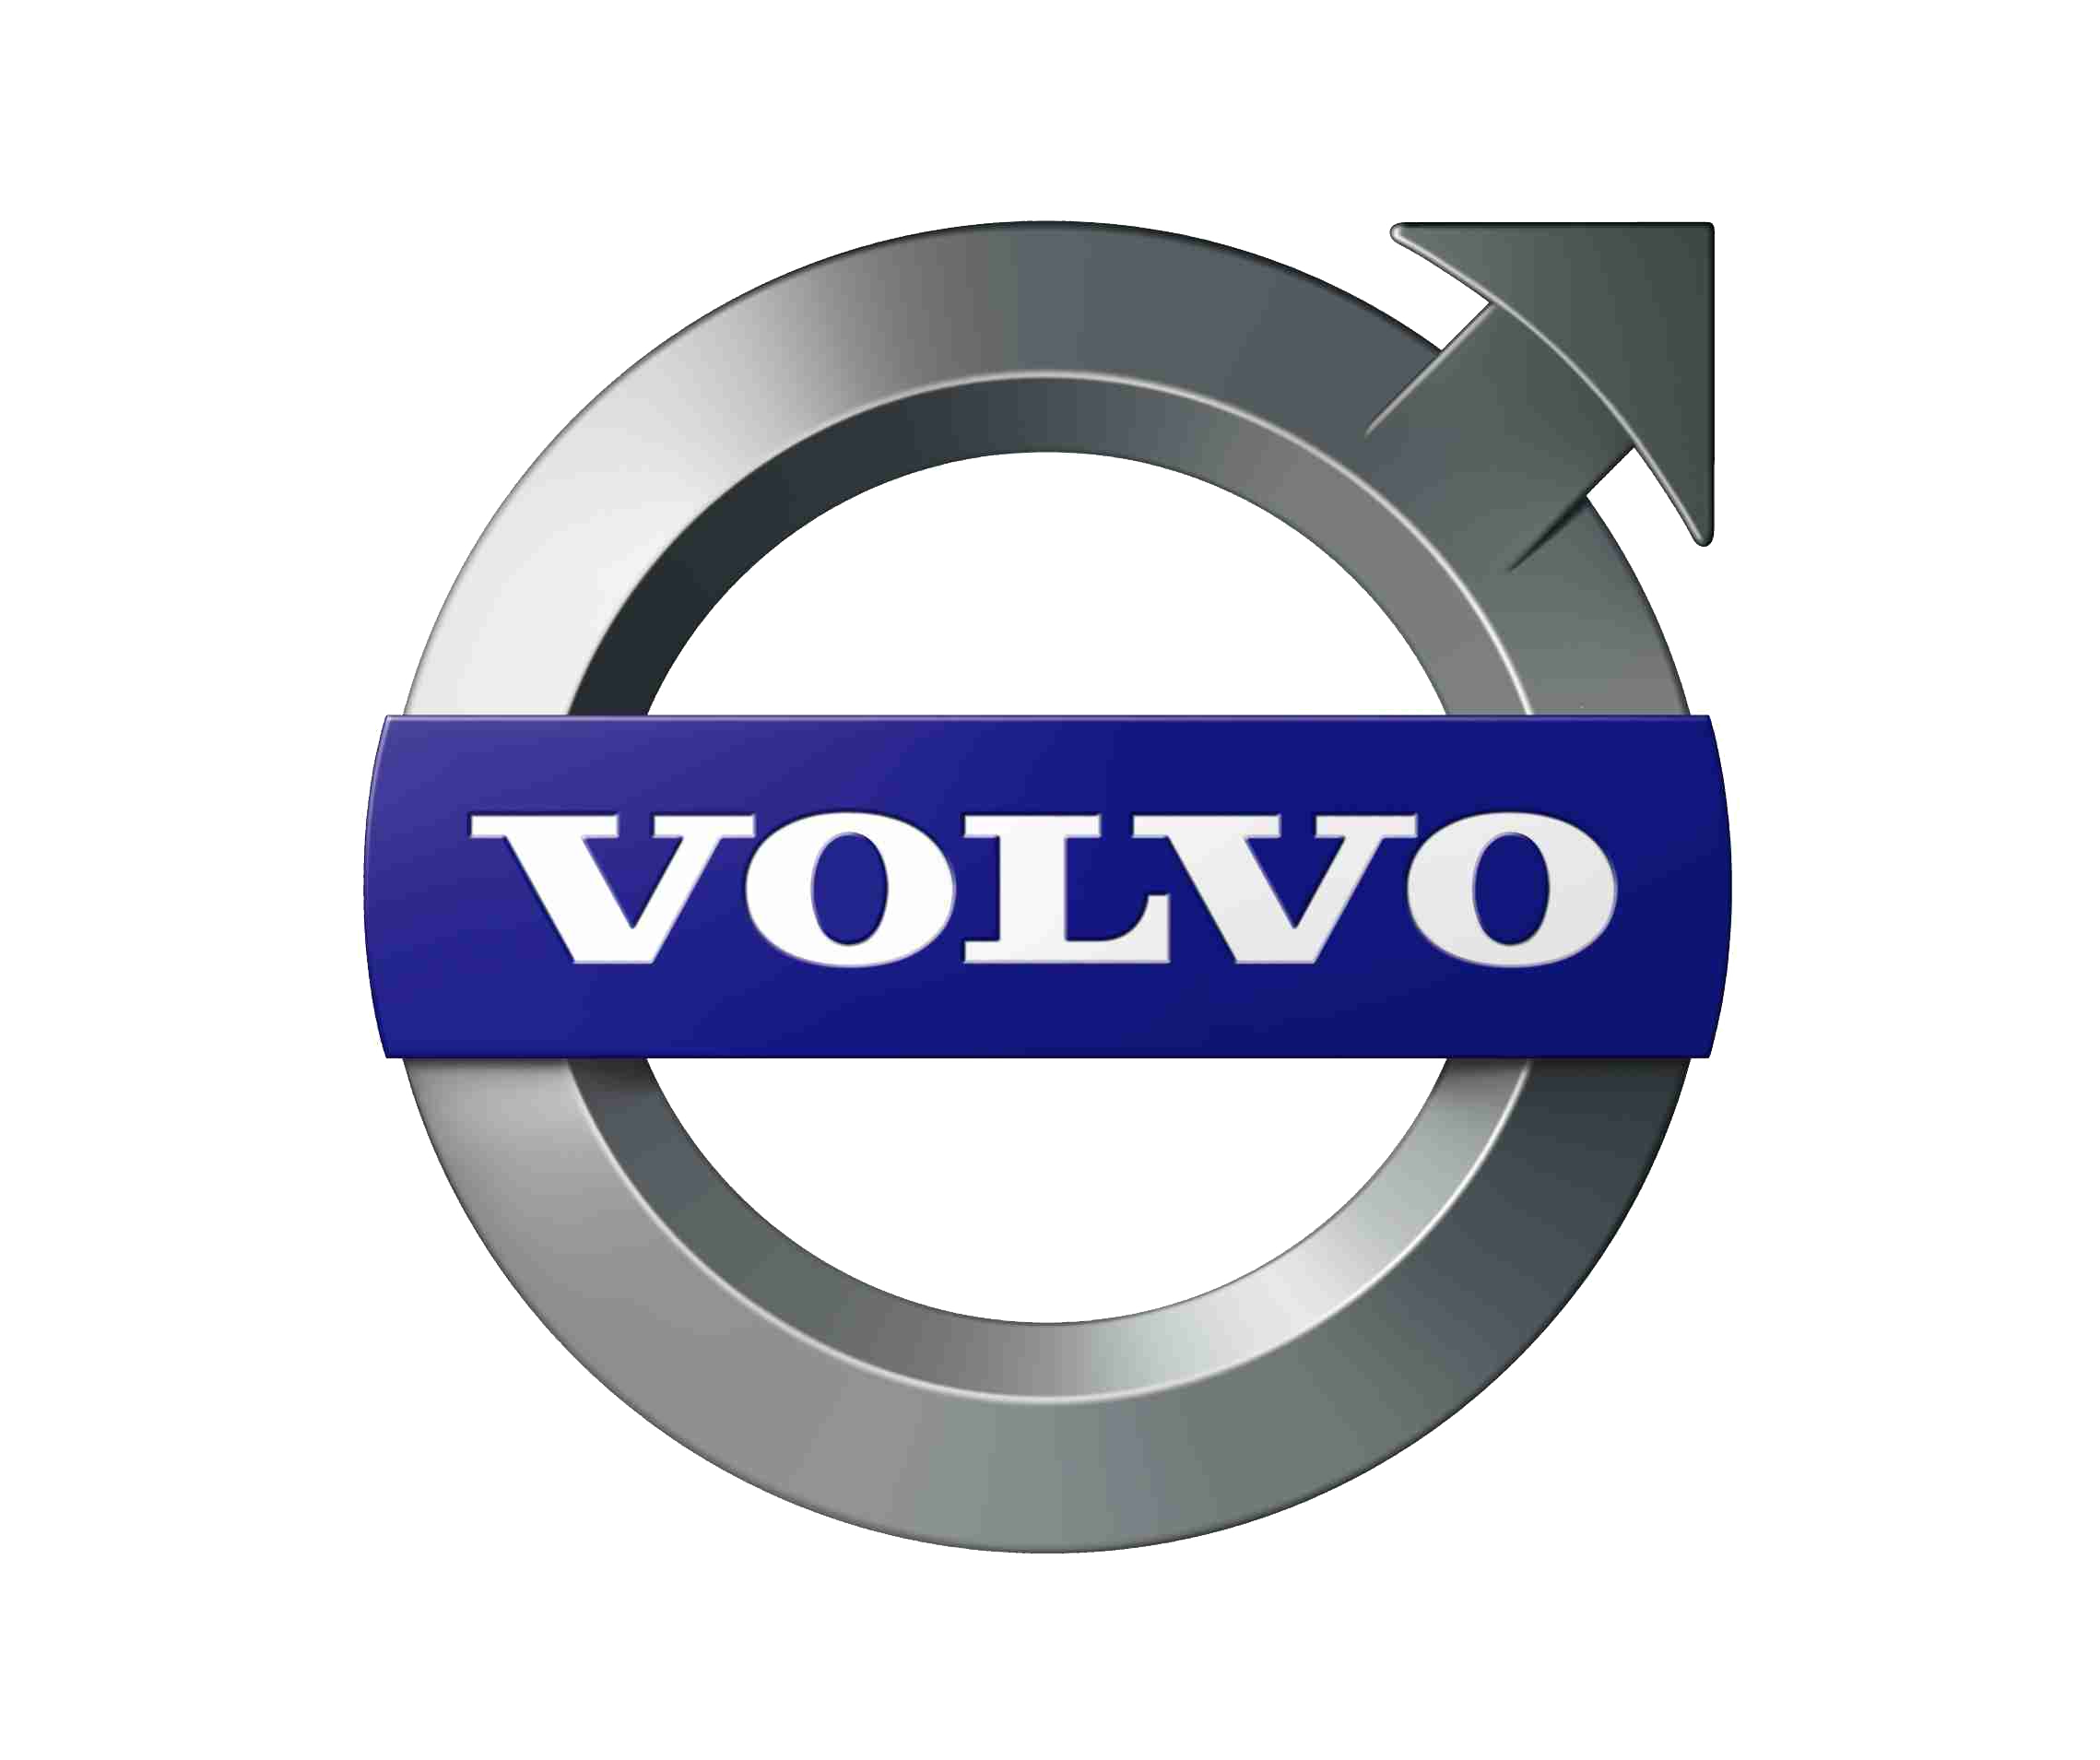 Used Volvo Cincinnati